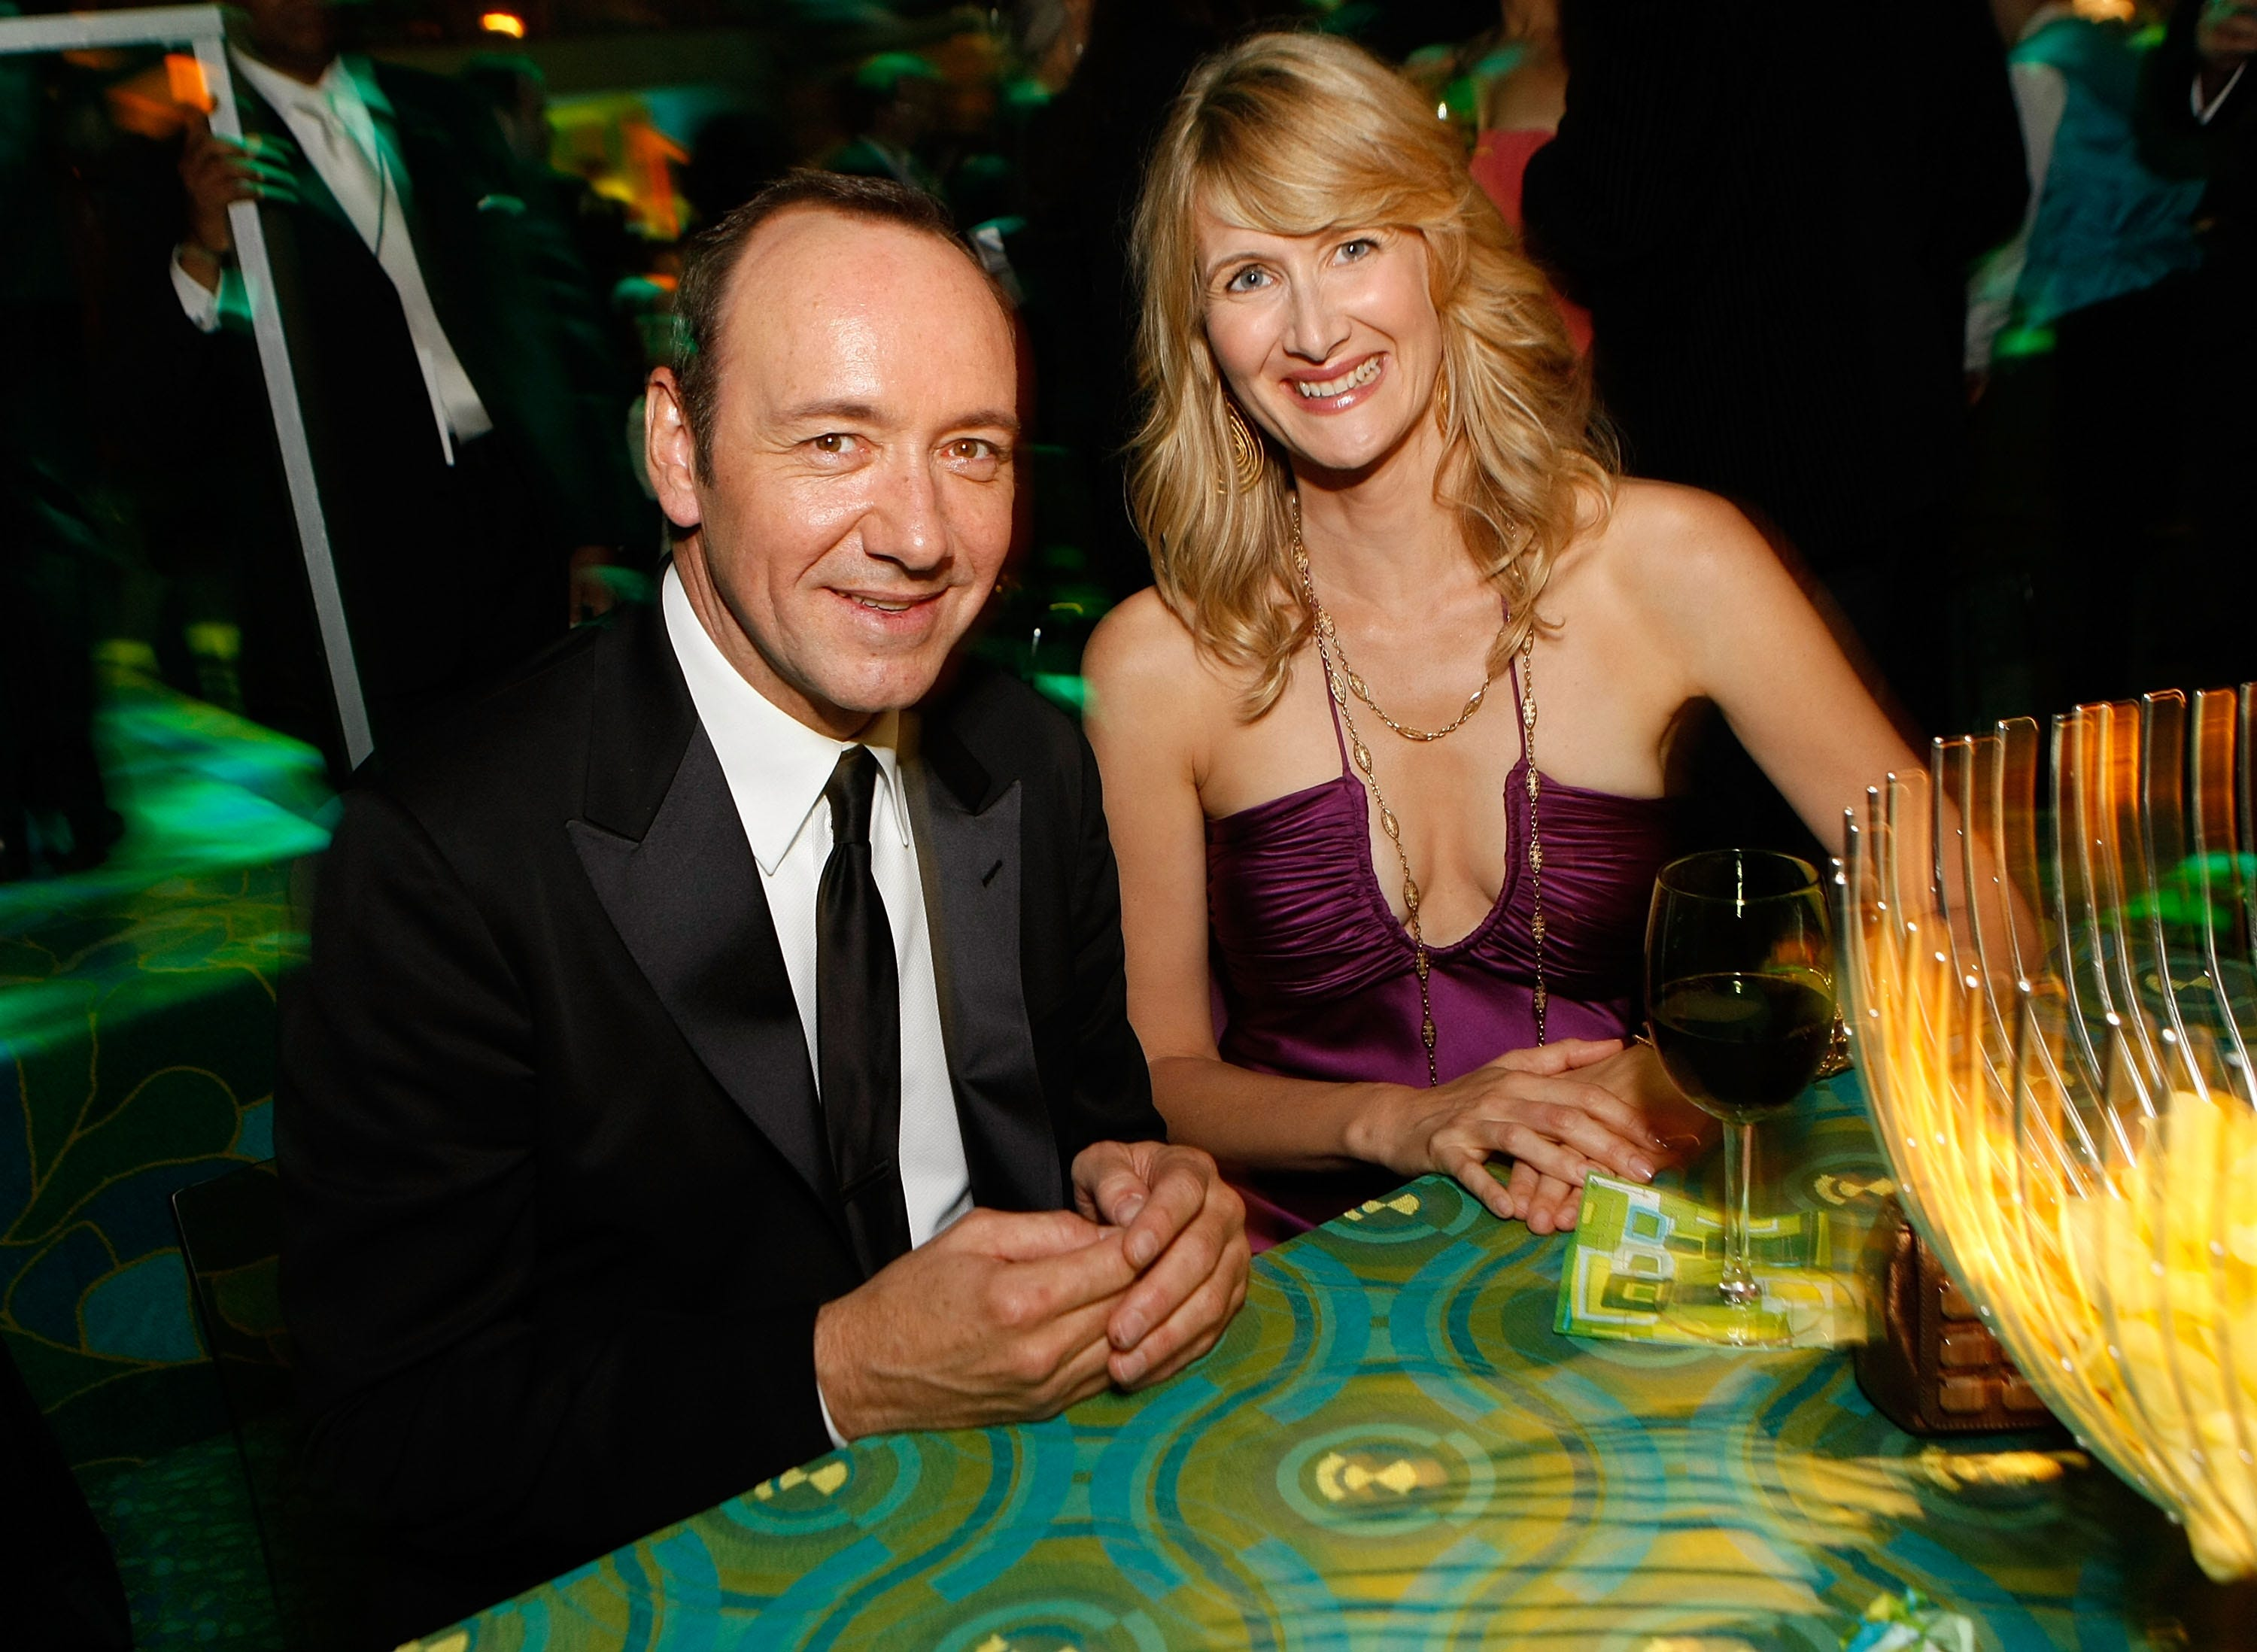 WEST HOLLYWOOD, CA - SEPTEMBER 21: Actor Kevin Spacey